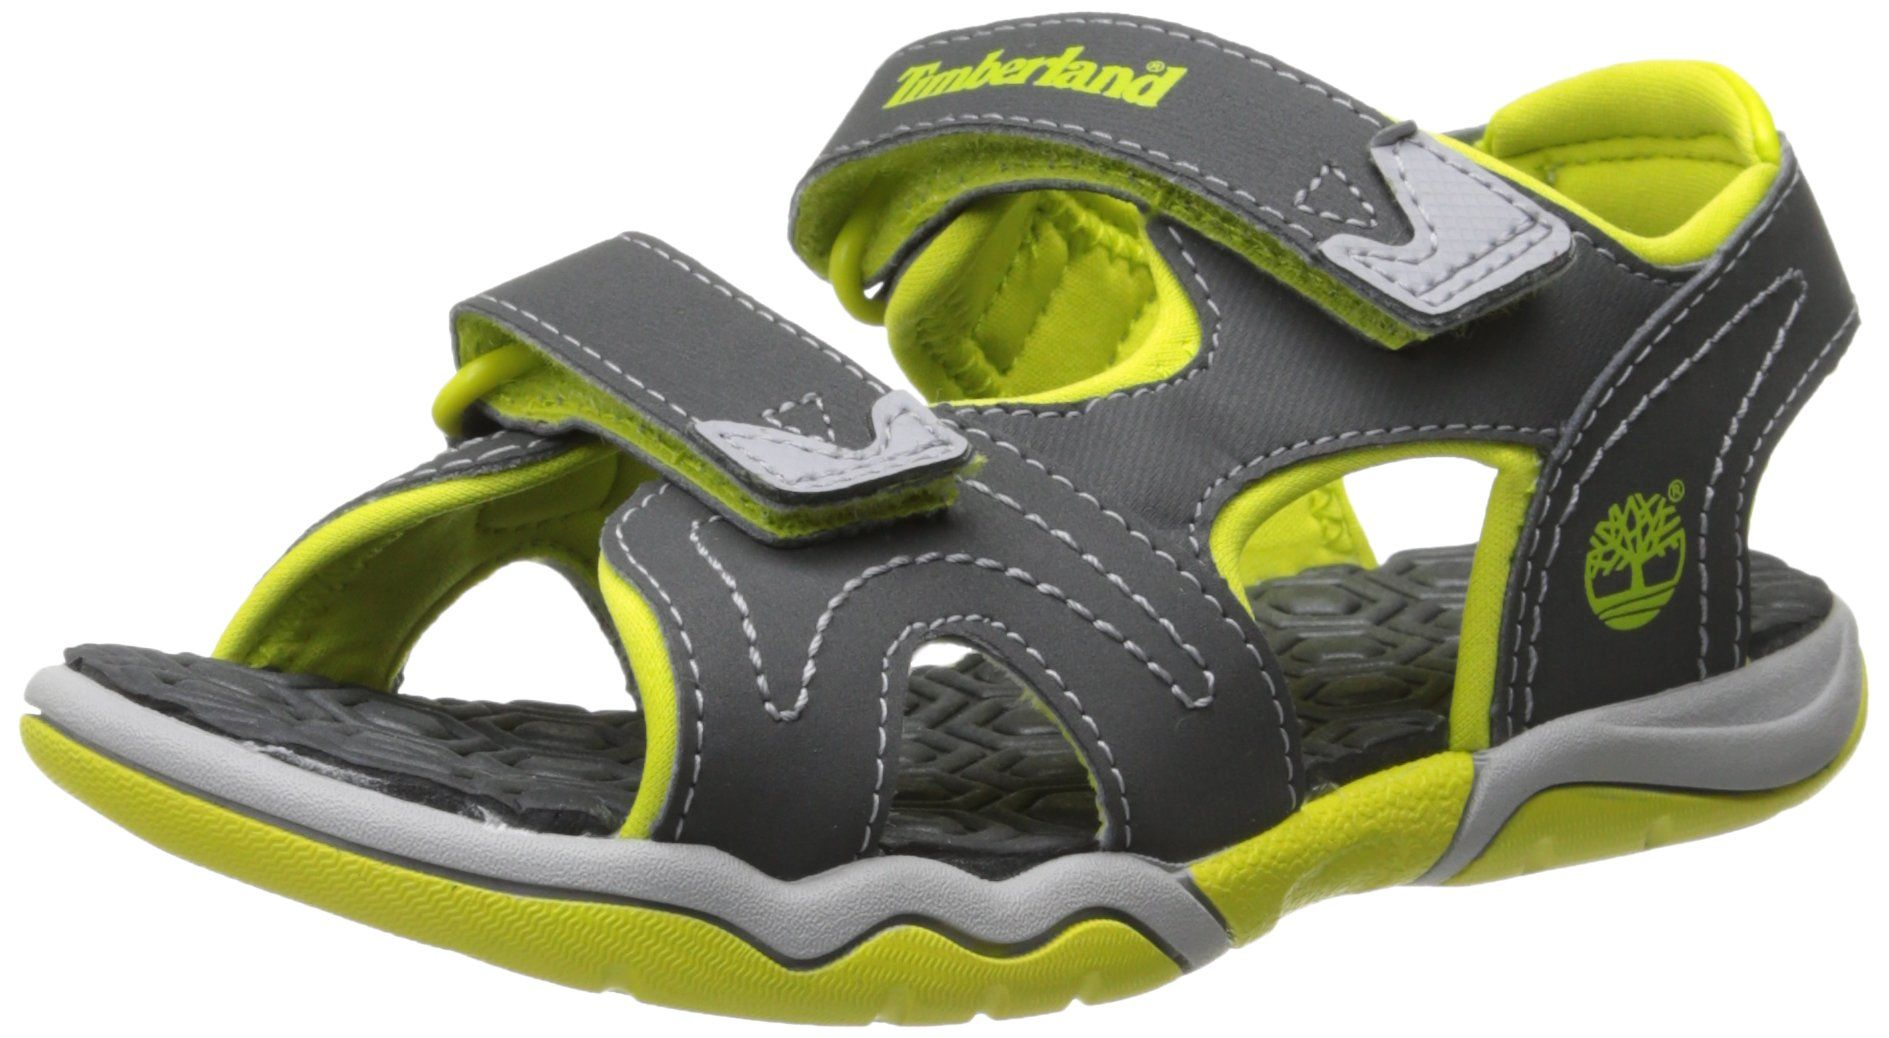 Timberland Active Casual Sandal Ftk_adventure Seeker 2 Strap Sandal,  Sandales Bout ouvert Mixte Enfant, Gris (Dark Grey With Green), 21 -  Chaussures ...